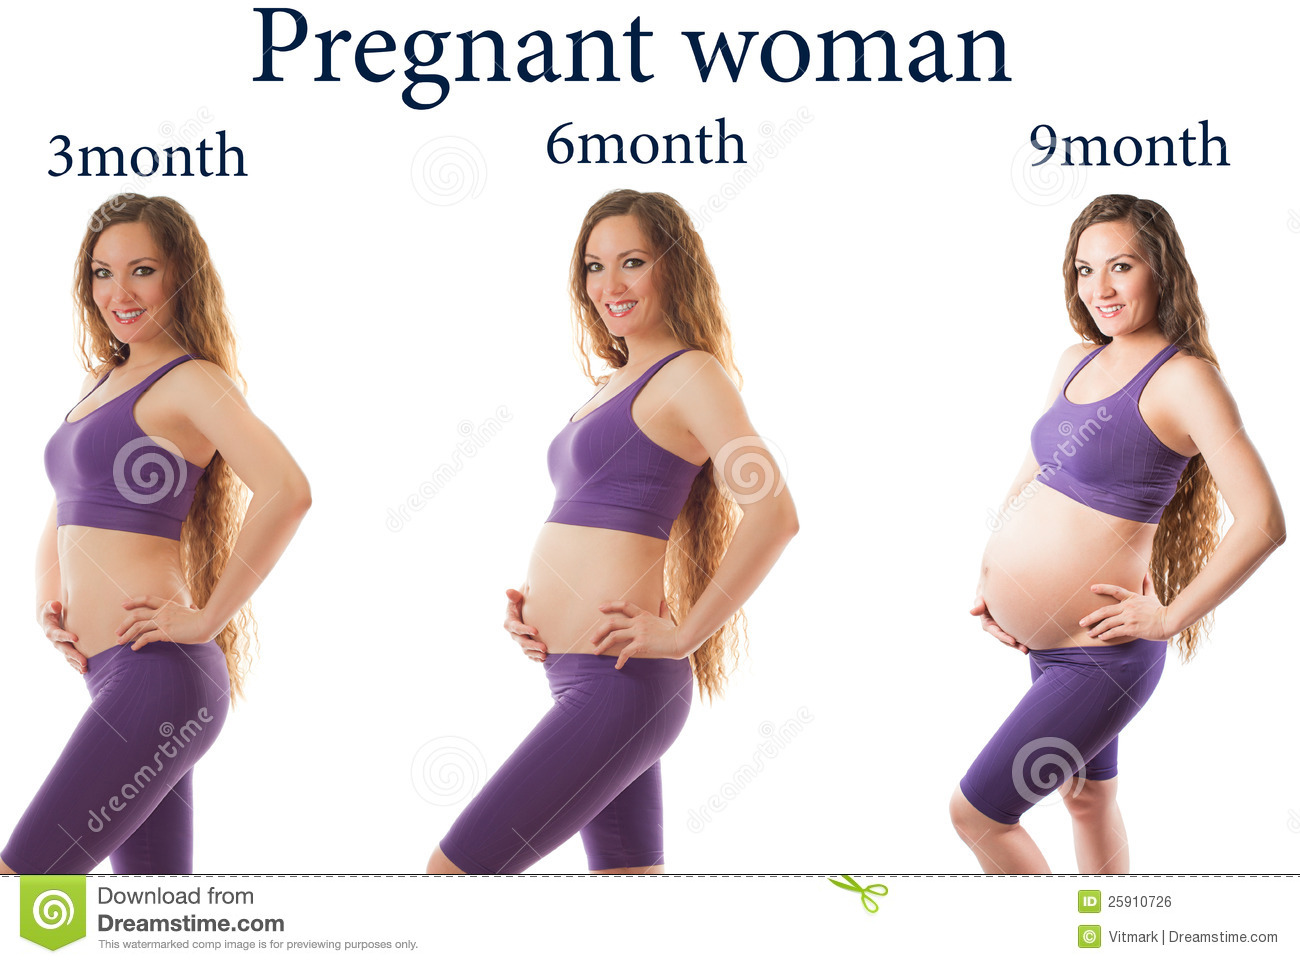 6d550fece4 Pregnant woman fitness at different stages of pregnancy on white  background. The concept of Sport and Health